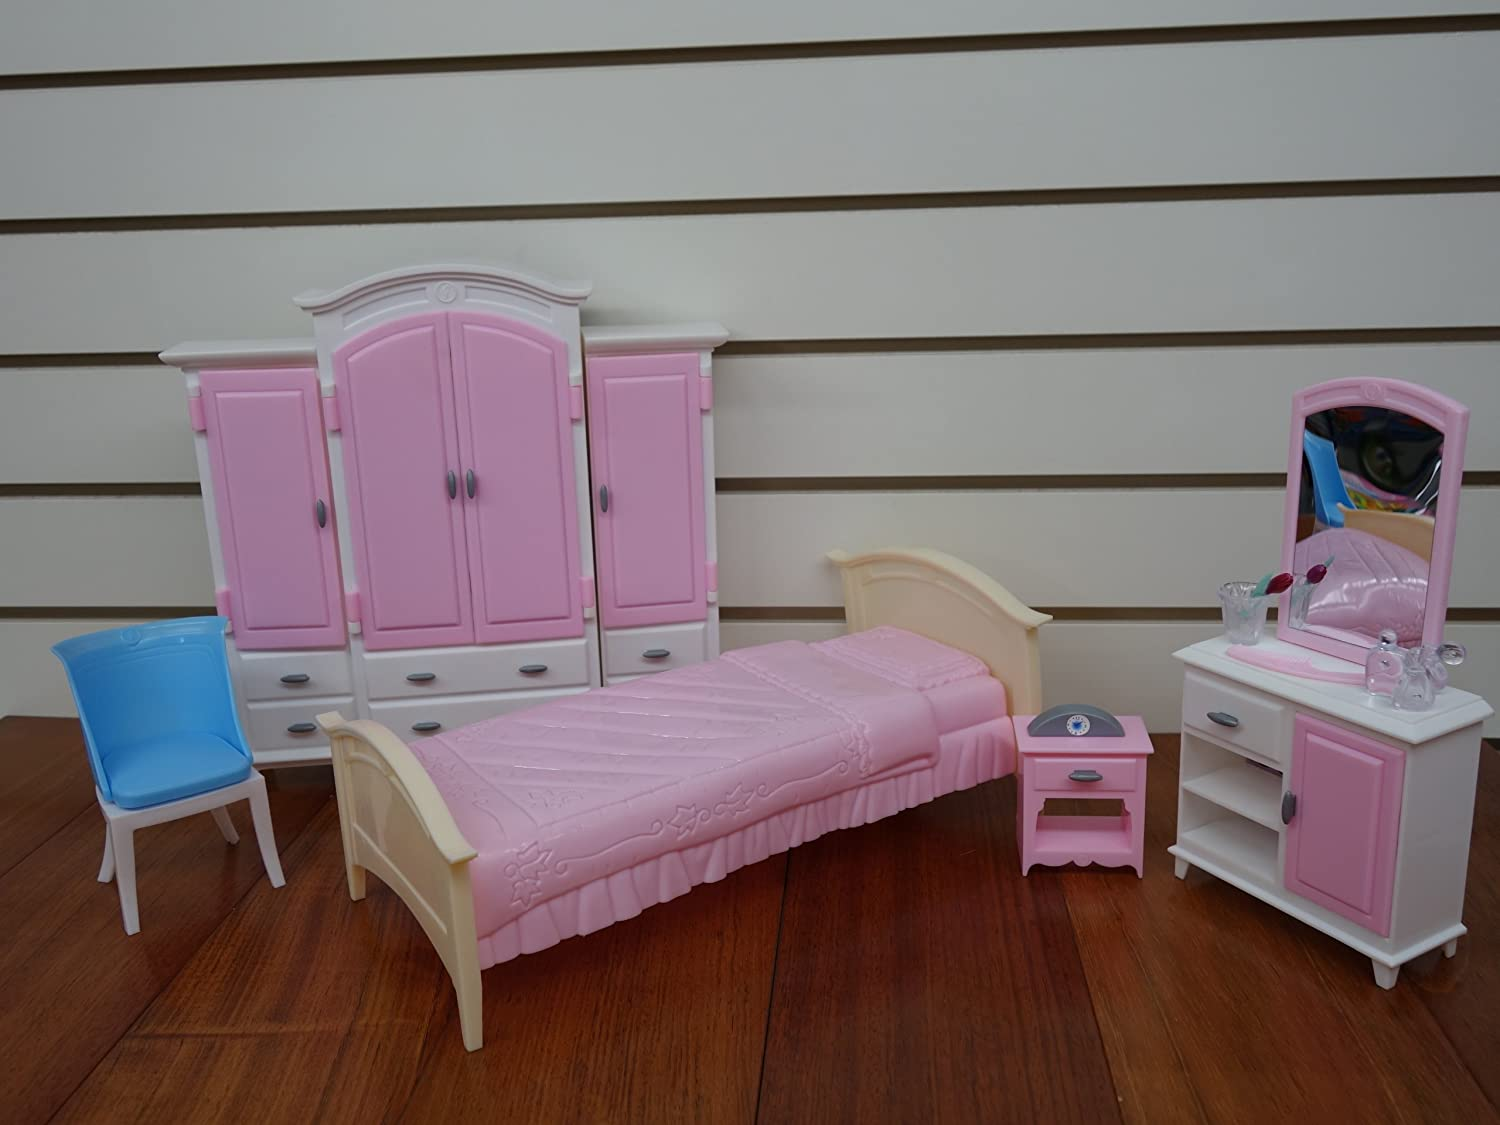 Amazon.com: Barbie Size Dollhouse Furniture- Bed Room & Wardrobe ...